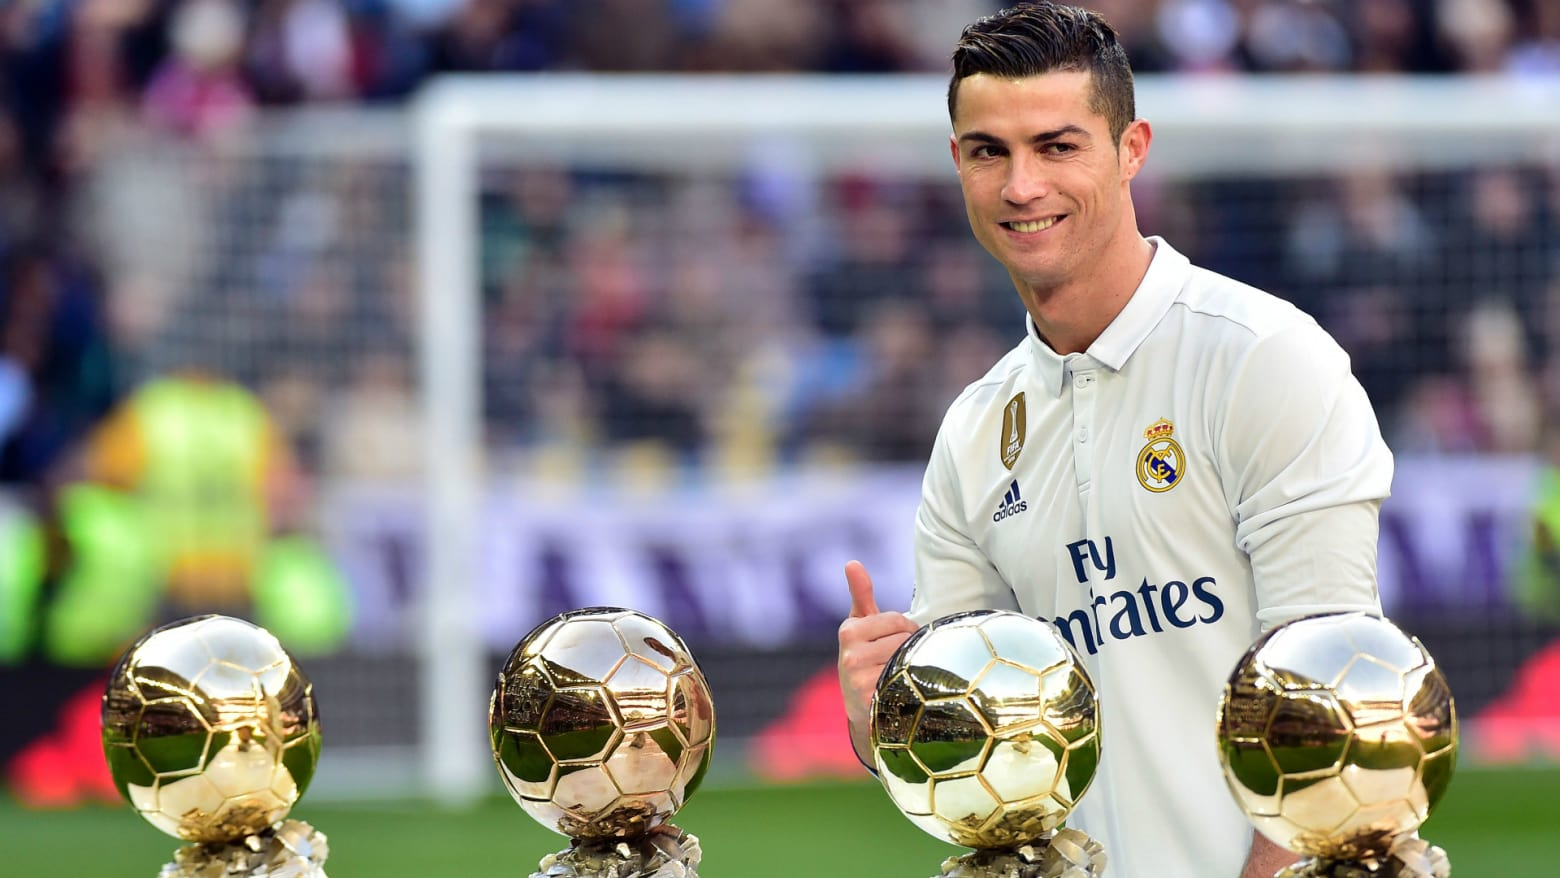 Best La Liga Players of All Time